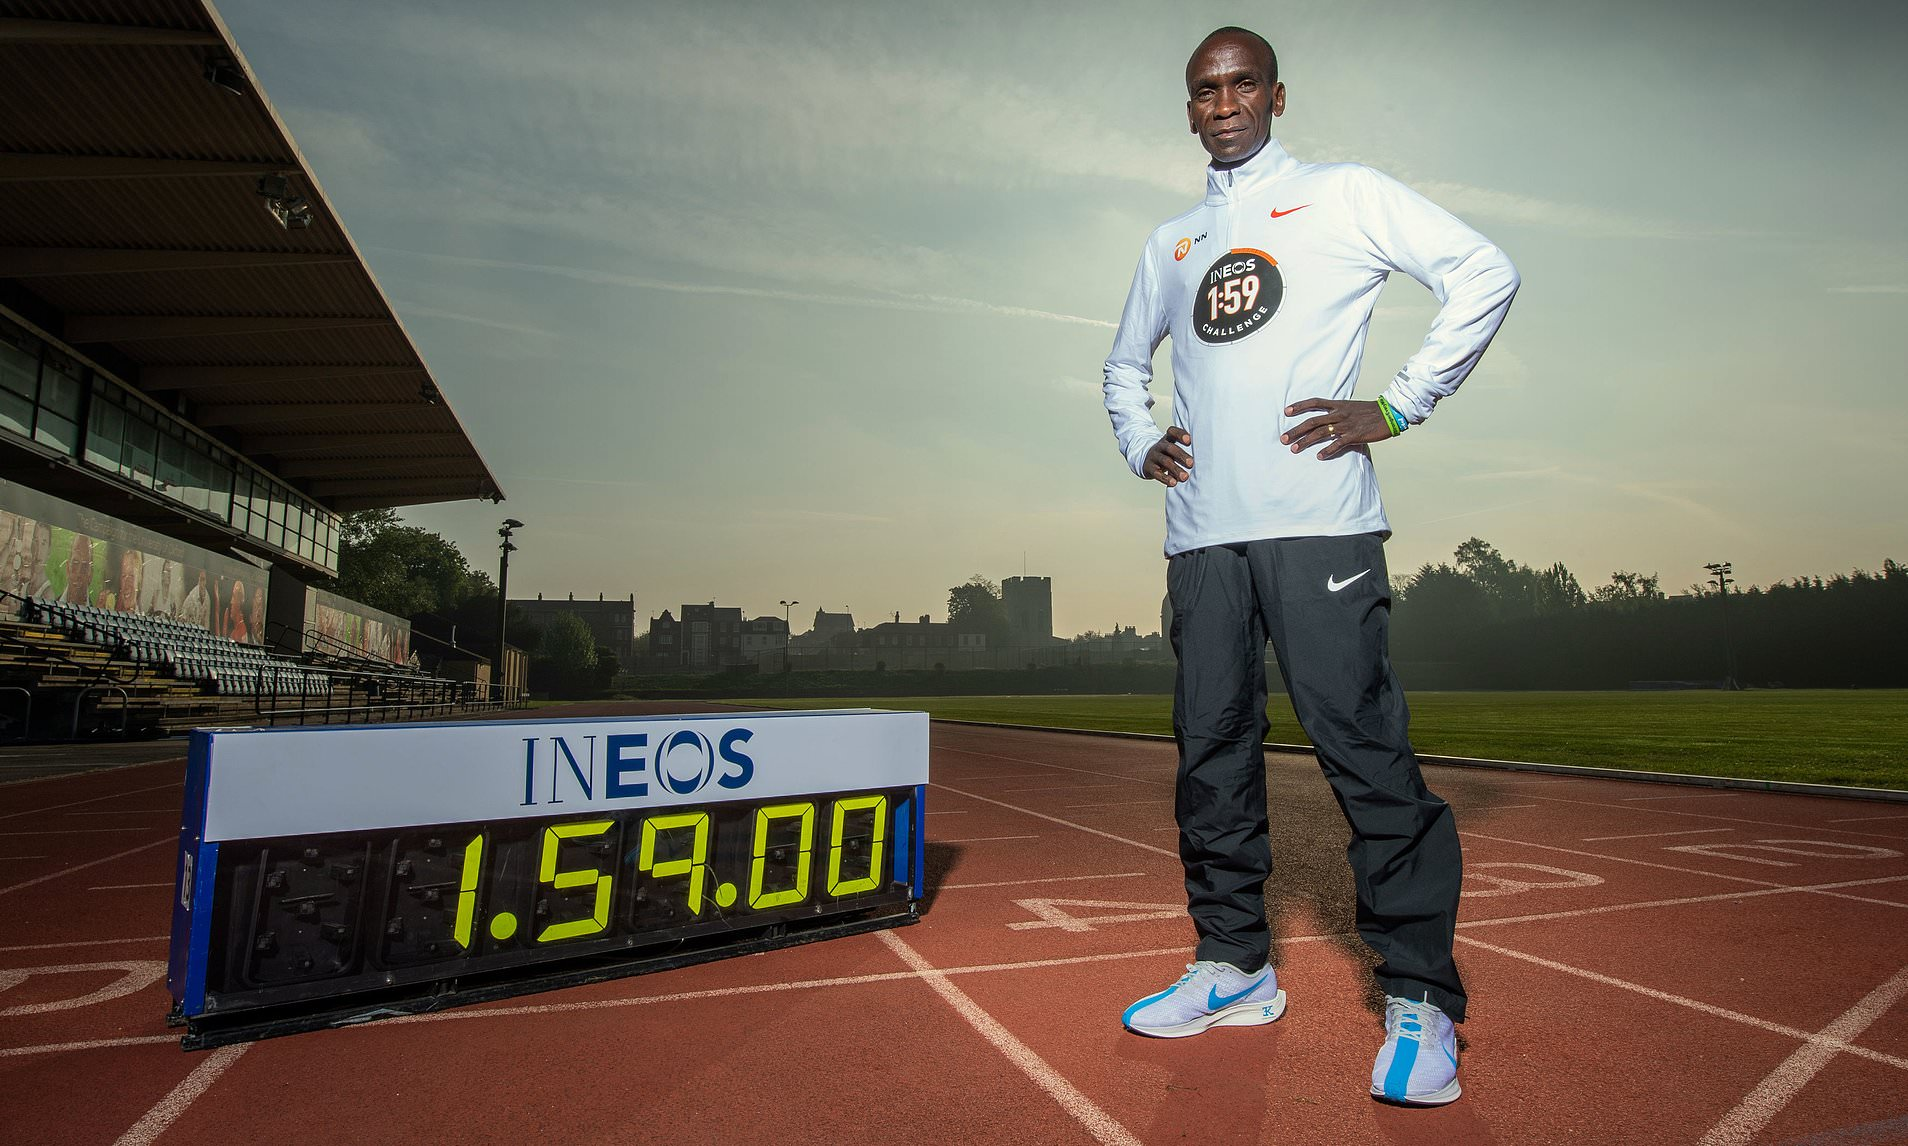 For the INEOS 1:59 Kipchoge will be using special shoes by Nike which will help him run faster. Photo/ INEOS 1:59